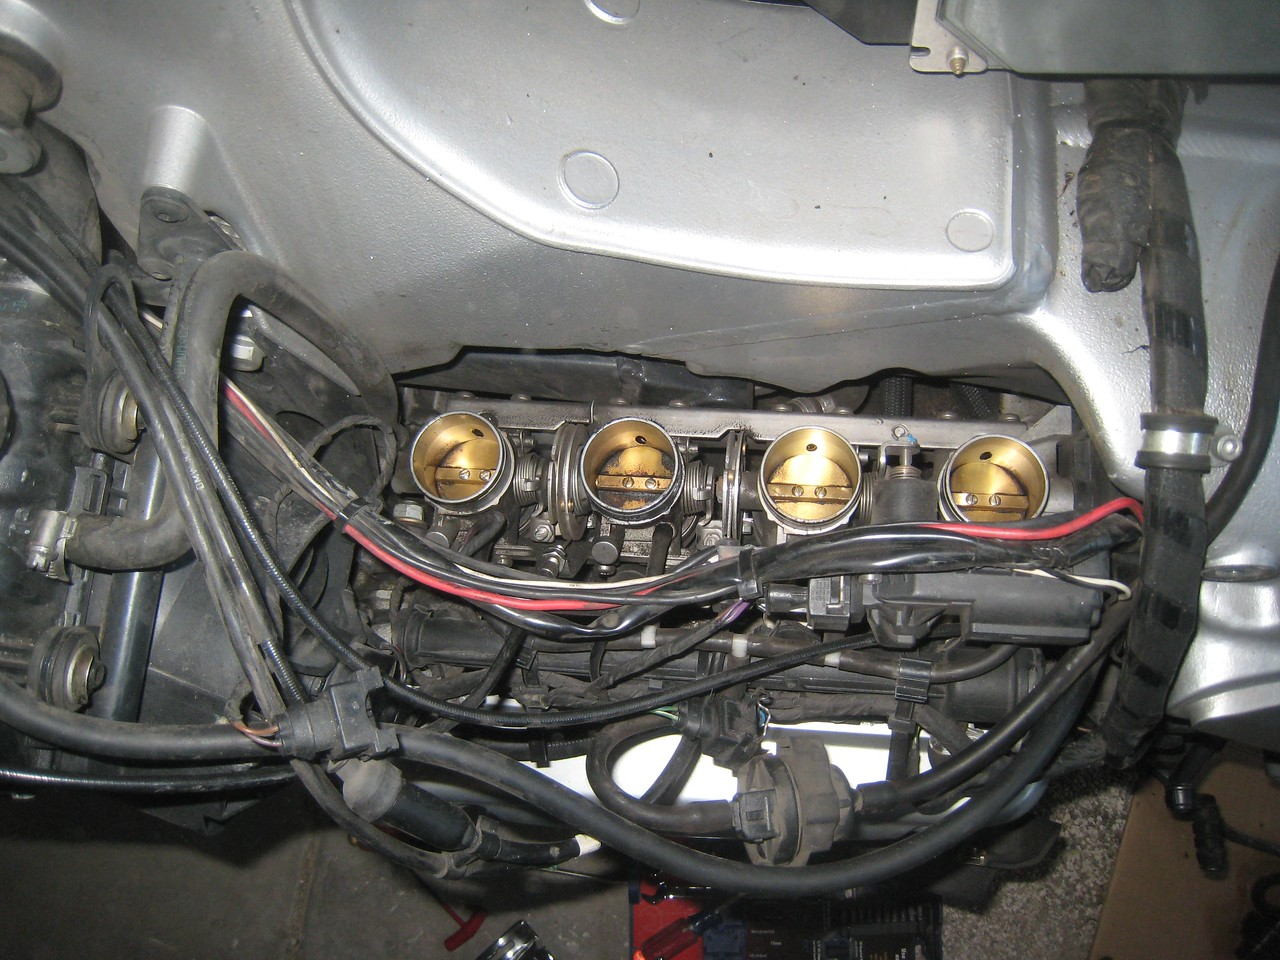 The throttle bodies got a good spritz of carb cleaner.